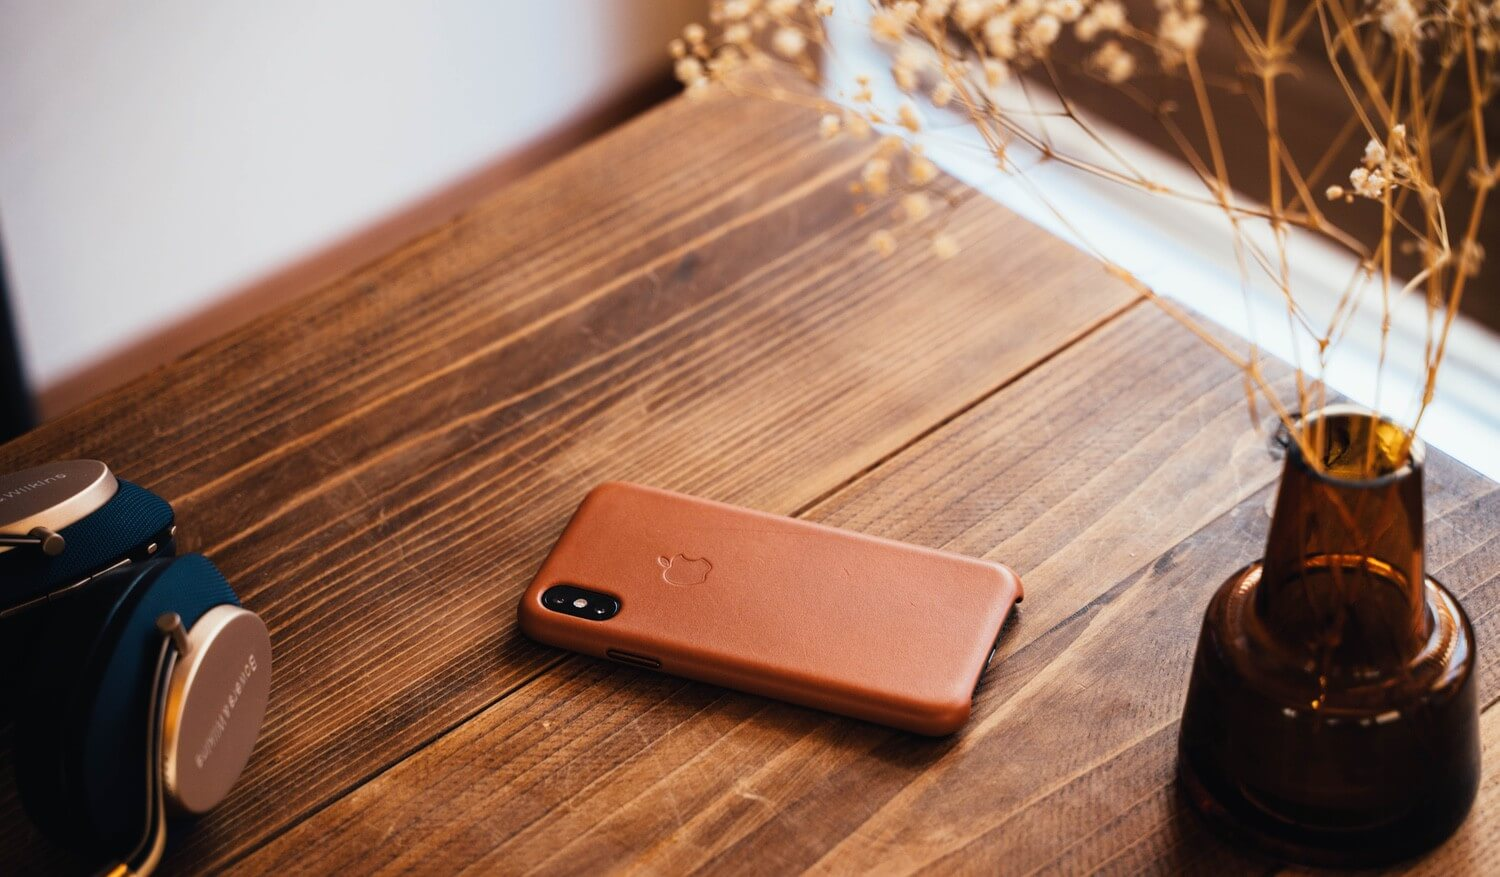 Iphonexs apple leathercase 0006  1